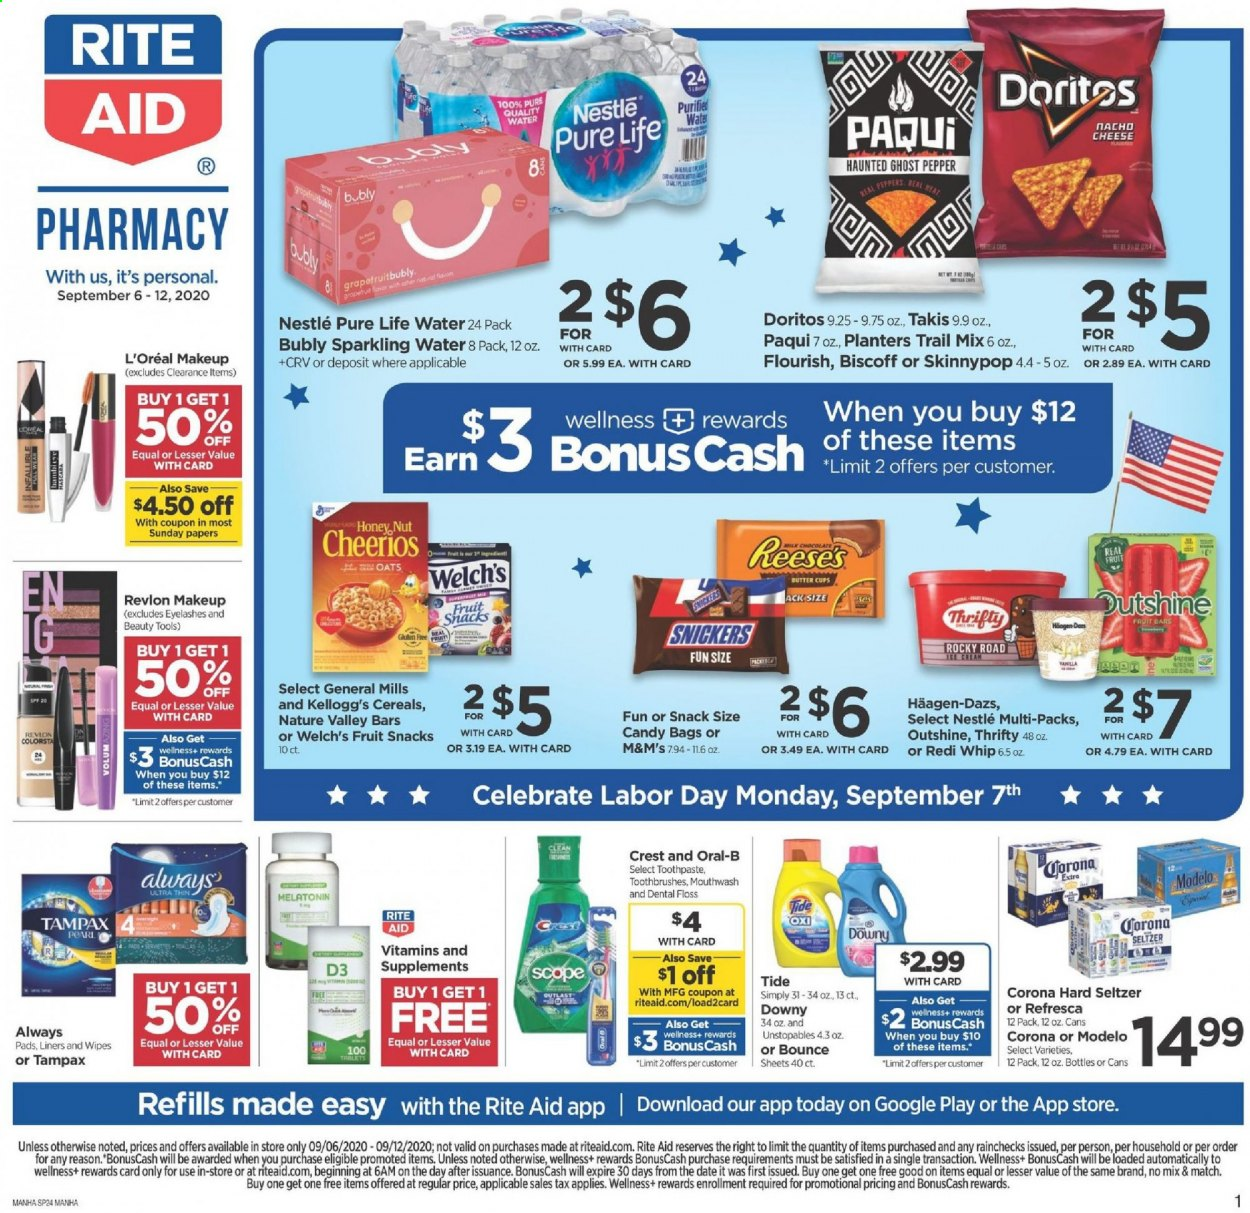 RITE AID Flyer - 09.06.2020 - 09.12.2020 - Sales products - Corona, Nestlé, candy, Snickers, M&M's, Doritos, snack, oats, cereals, Cheerios, pepper, seltzer, sparkling water, water, wipes, Downy, Tide, Unstopables, Oral-b, toothpaste, mouthwash, Tampax, L'Oréal, Revlon, tools, makeup, eyelashes, pad, Melatonin, Natrol, cream, ghost pepper. Page 1.